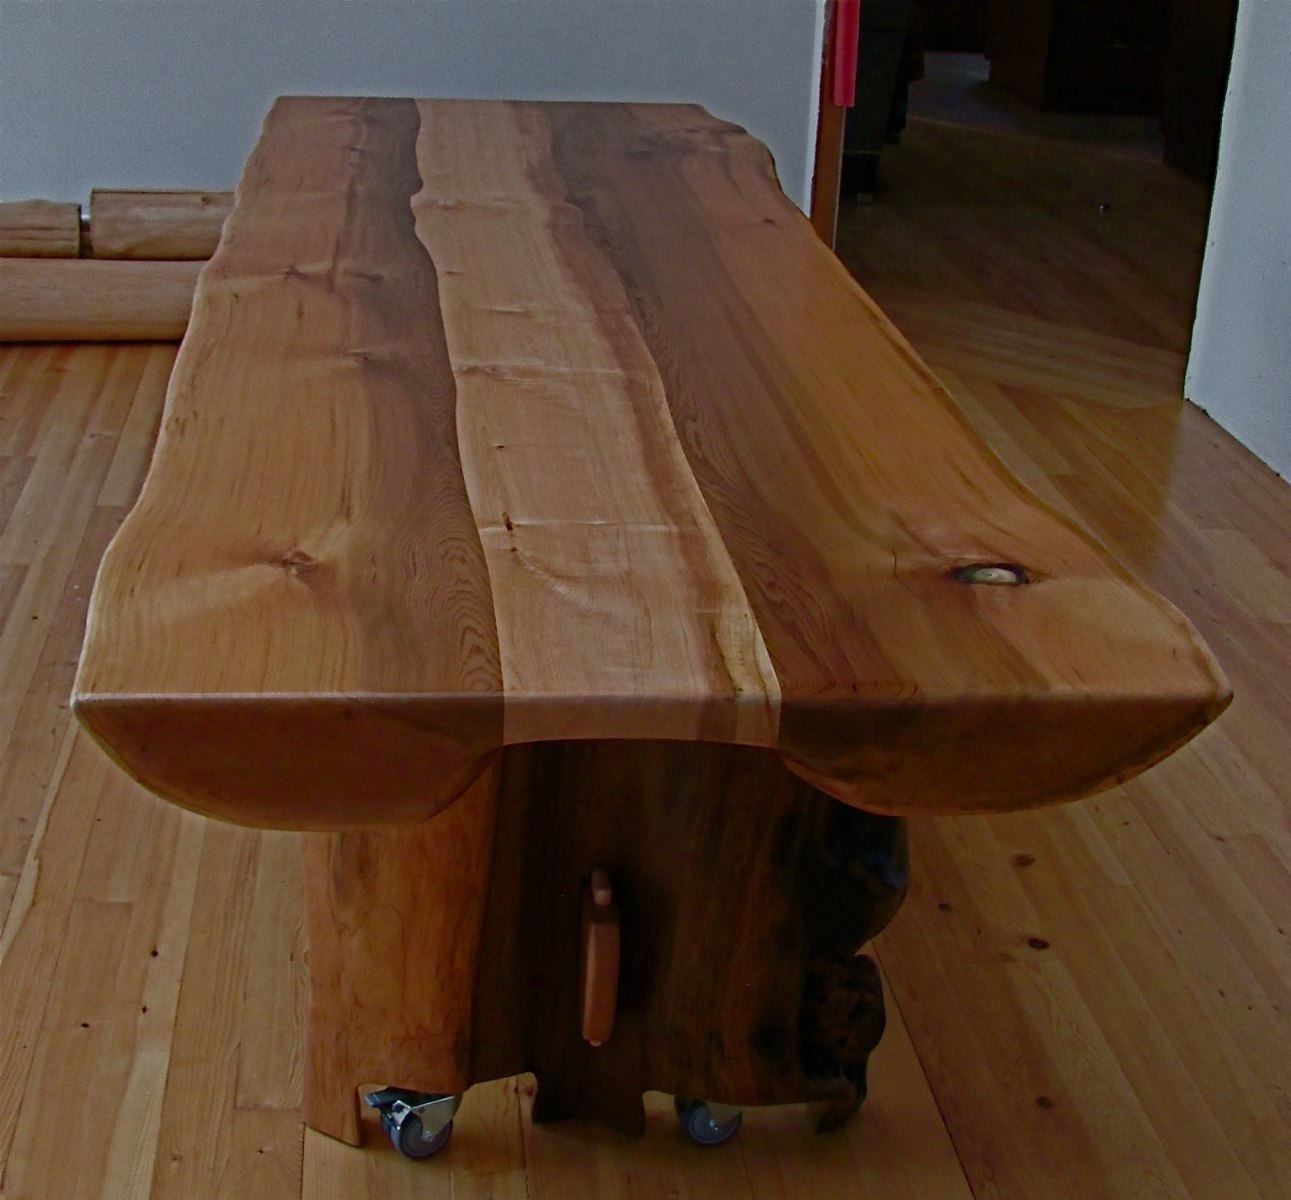 Split Slab Dining Table 10 Feet Long By 40 Inches Wide 30 High Finished With Bona Amber Seal And Traffic A Heavy Duty Low Voc Water Based